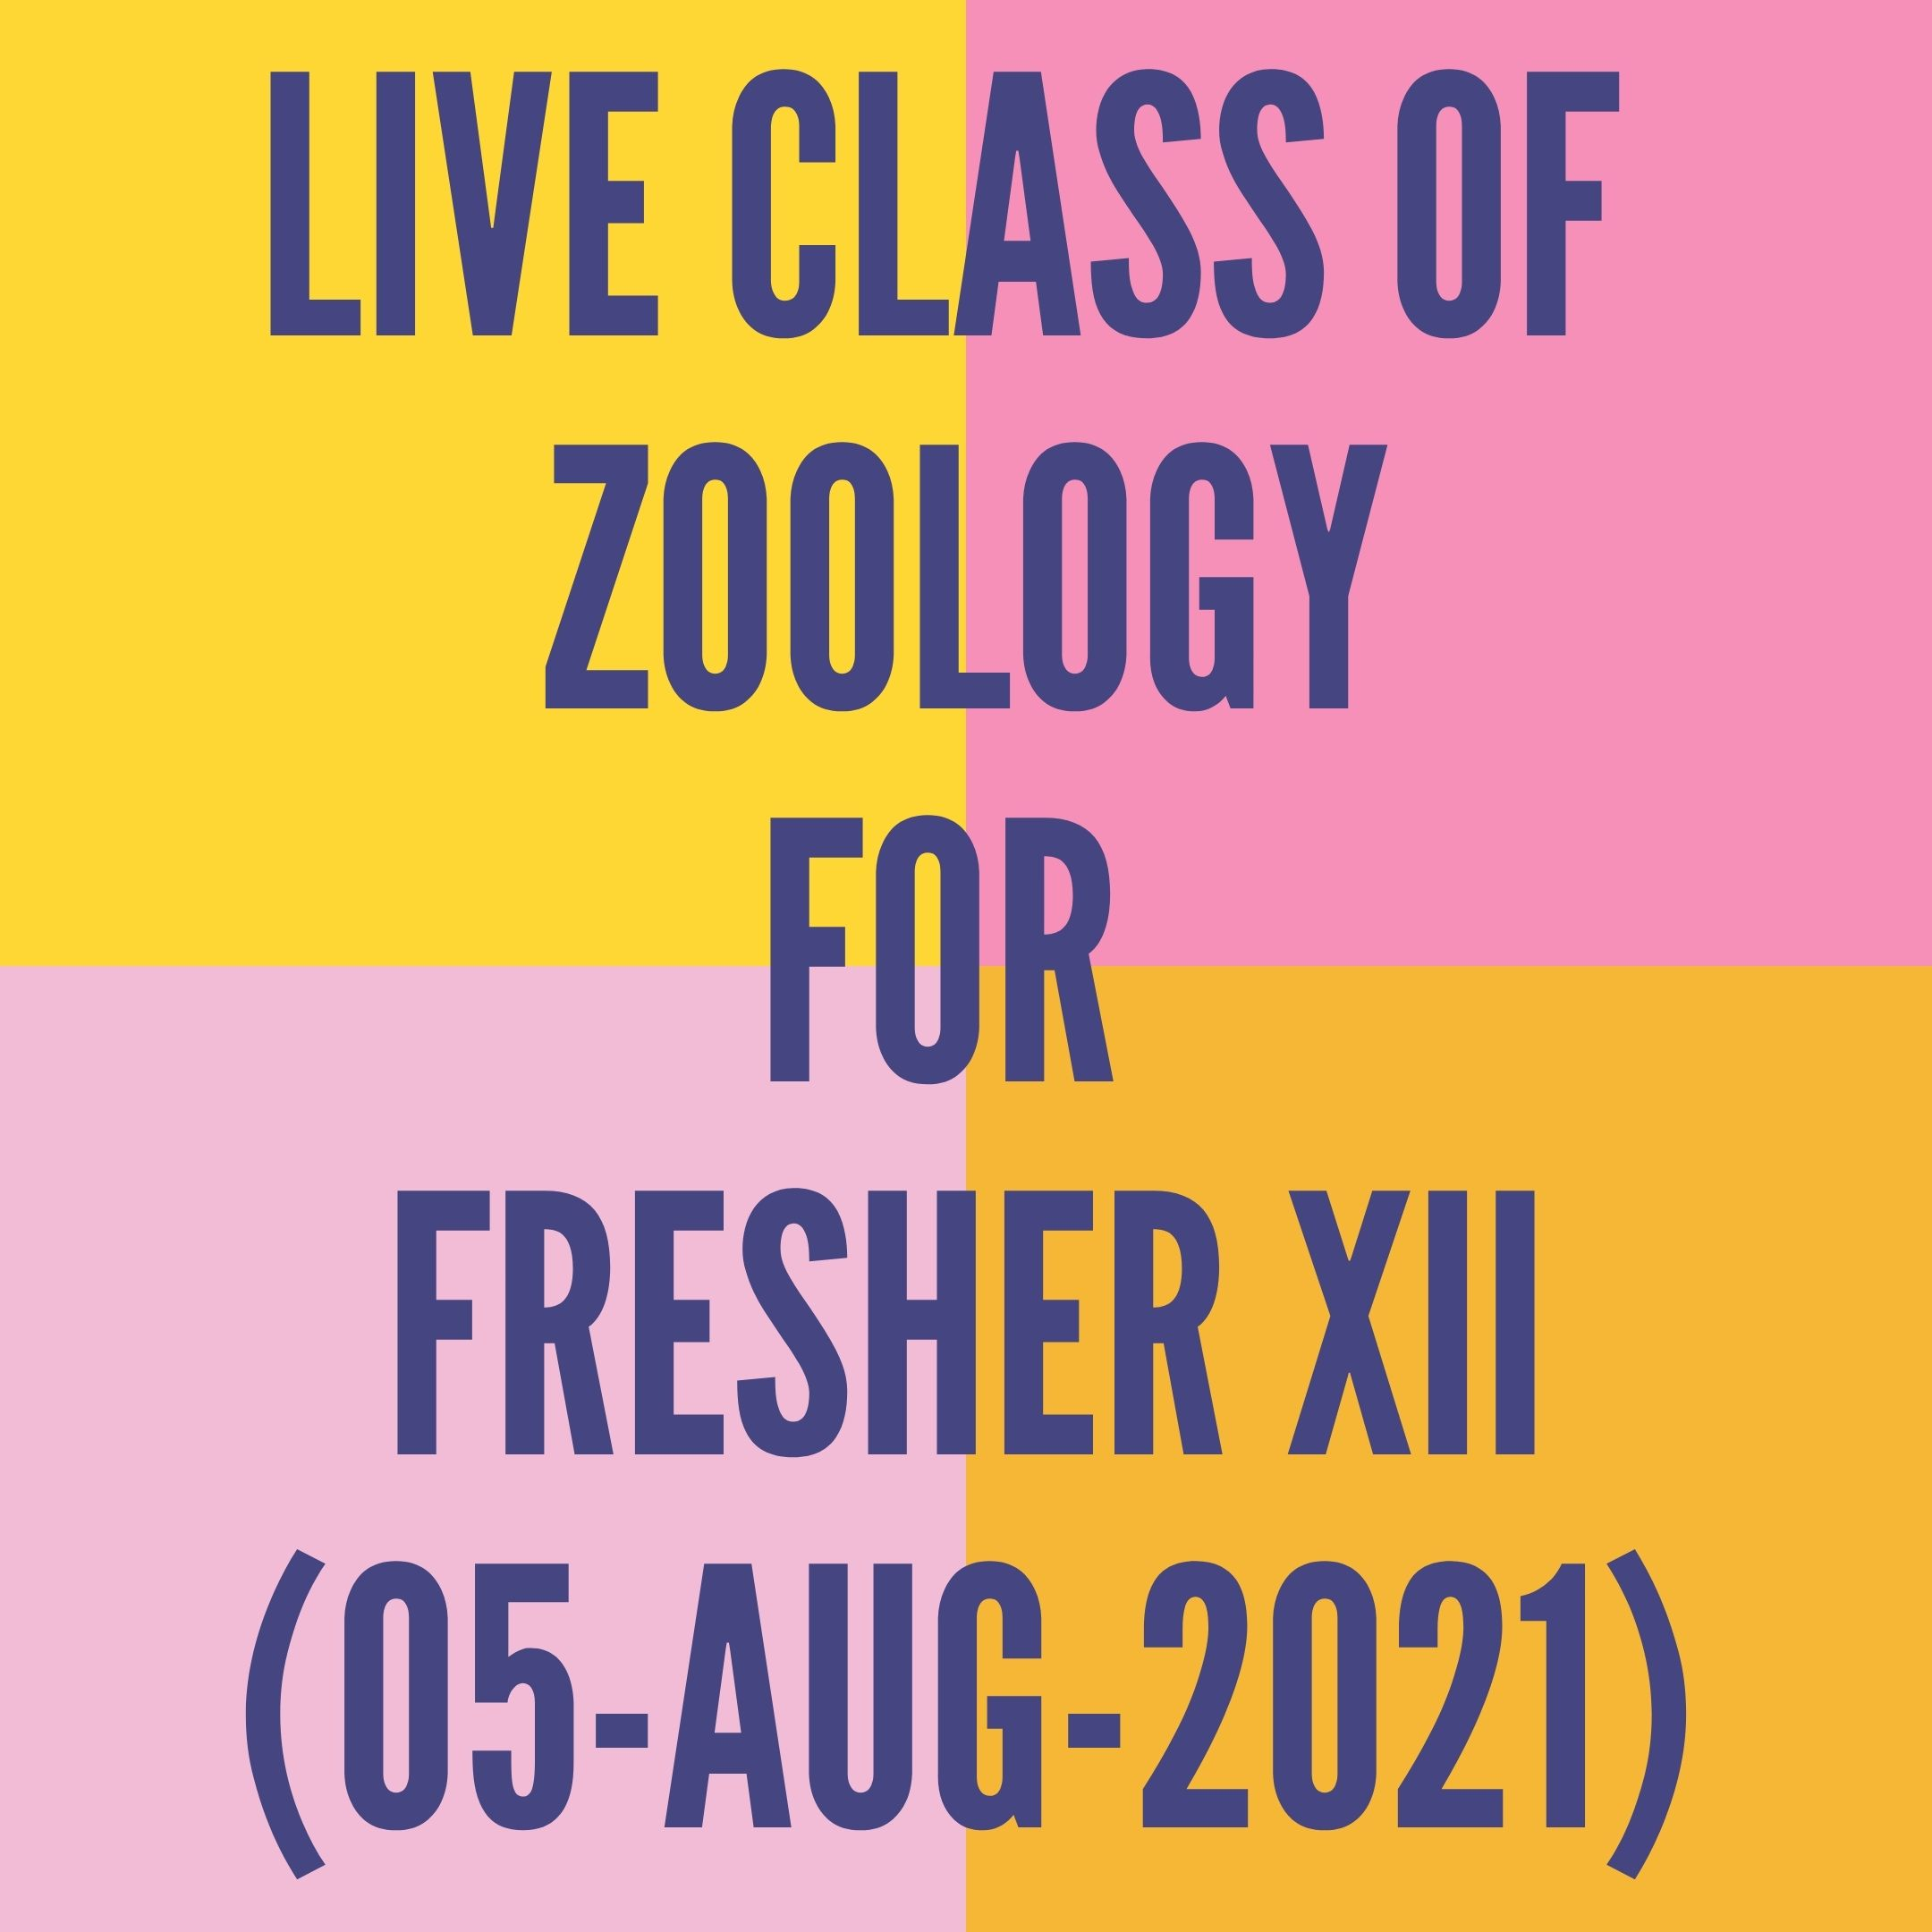 LIVE CLASS OF ZOOLOGY FOR FRESHER XII (05-AUG-2021) REPRODUCTIVE HEALTH